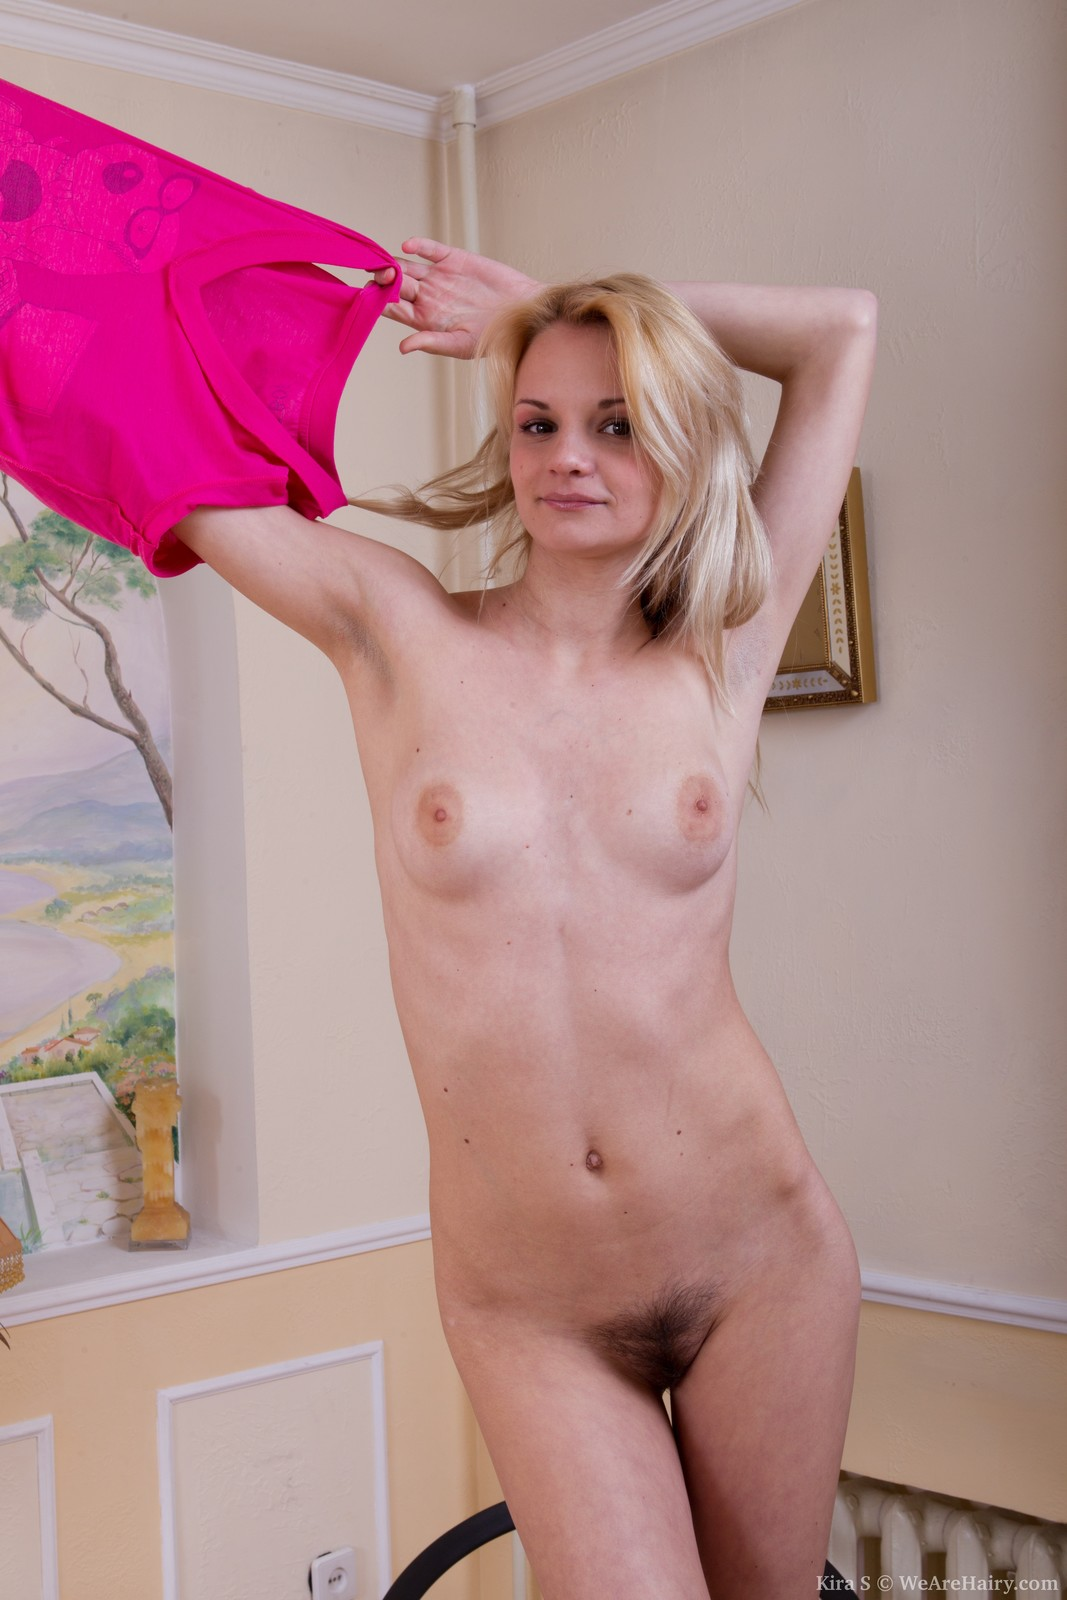 Hairy pussy fitness girl